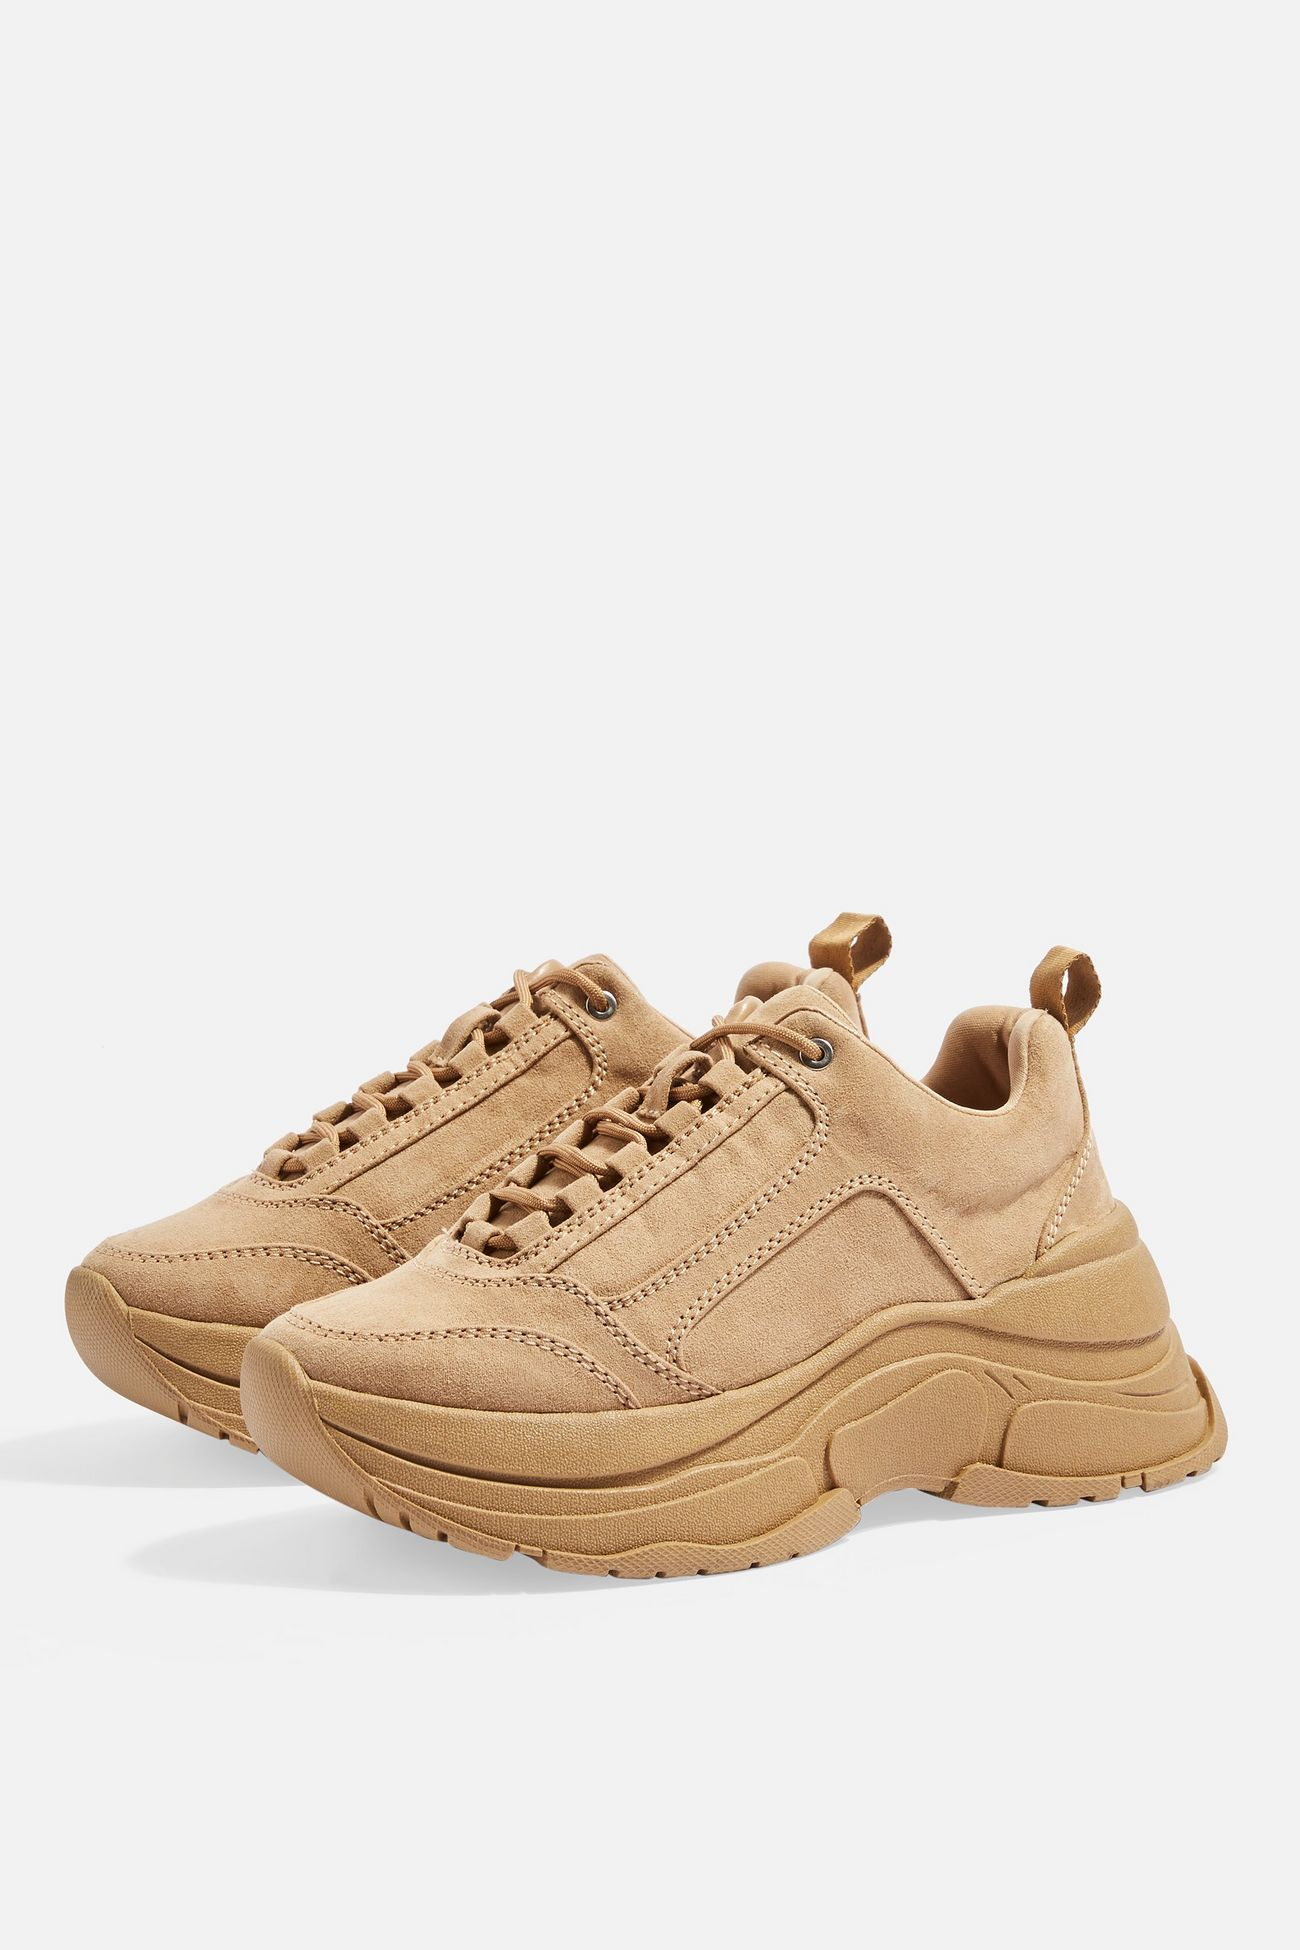 05eaf83facf6 CELINA Tan Chunky Trainers in 2019 | TOPSHOP | Trainers, Bag accessories